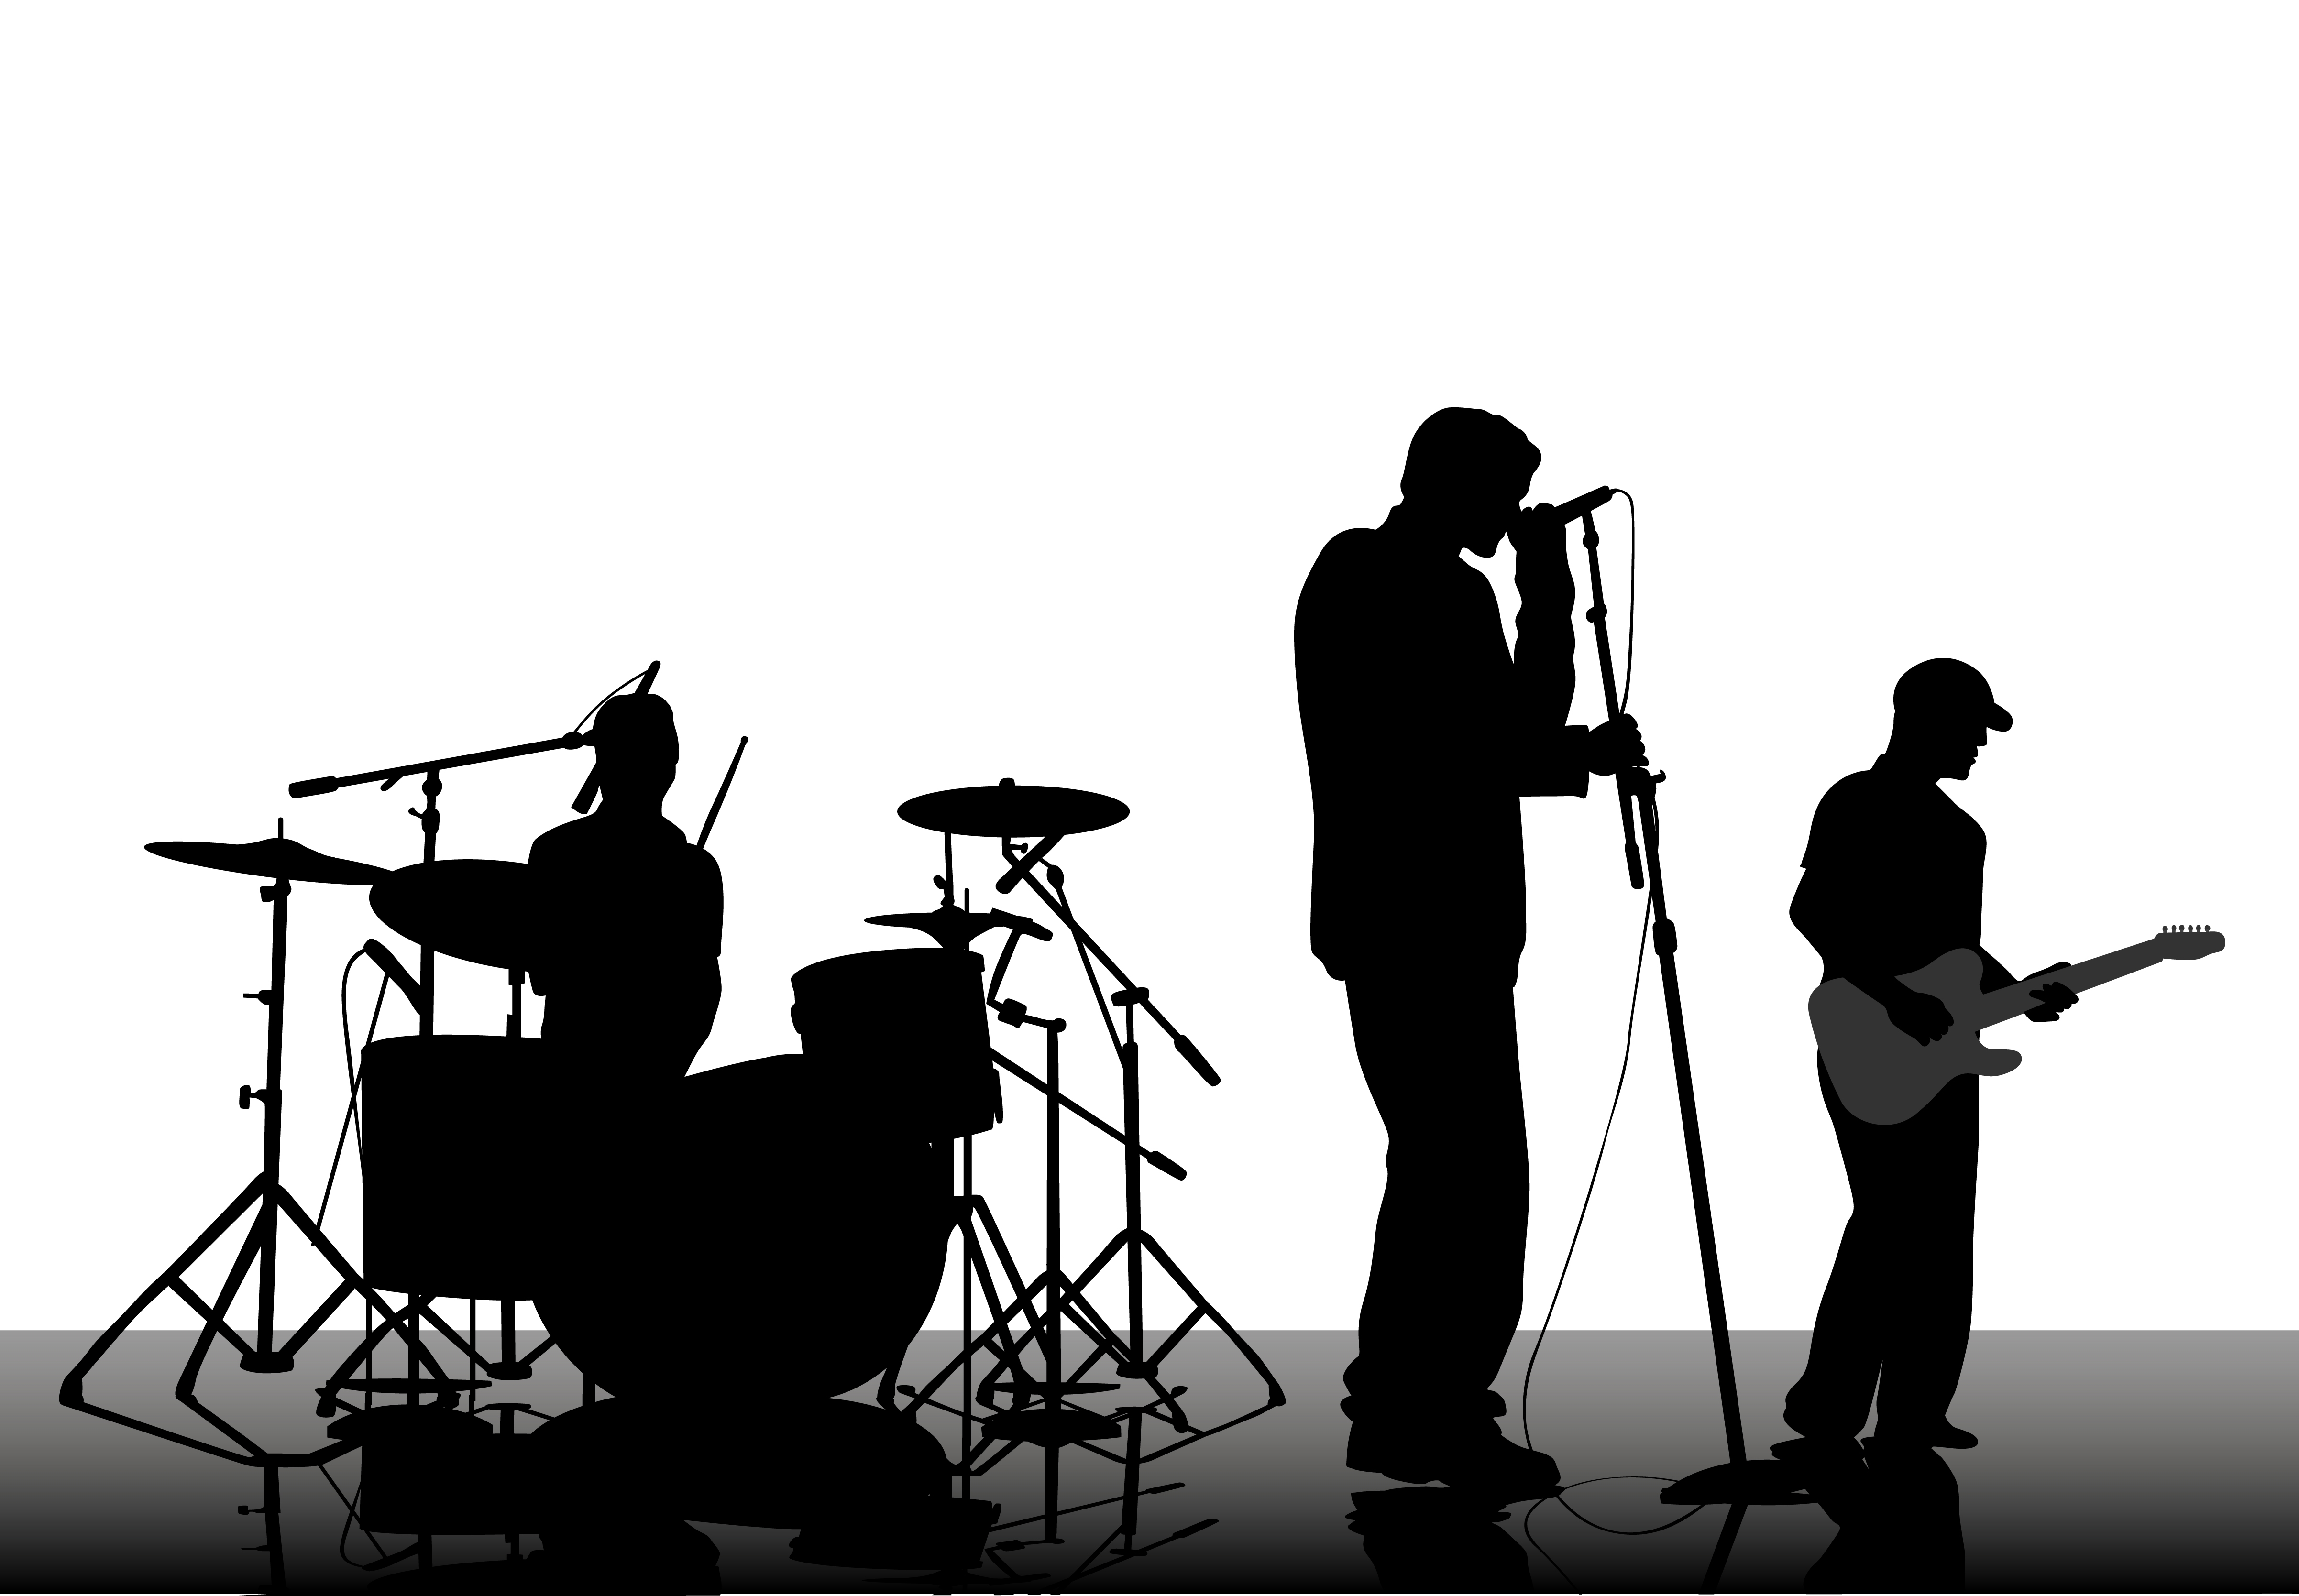 Live Band Clipart.